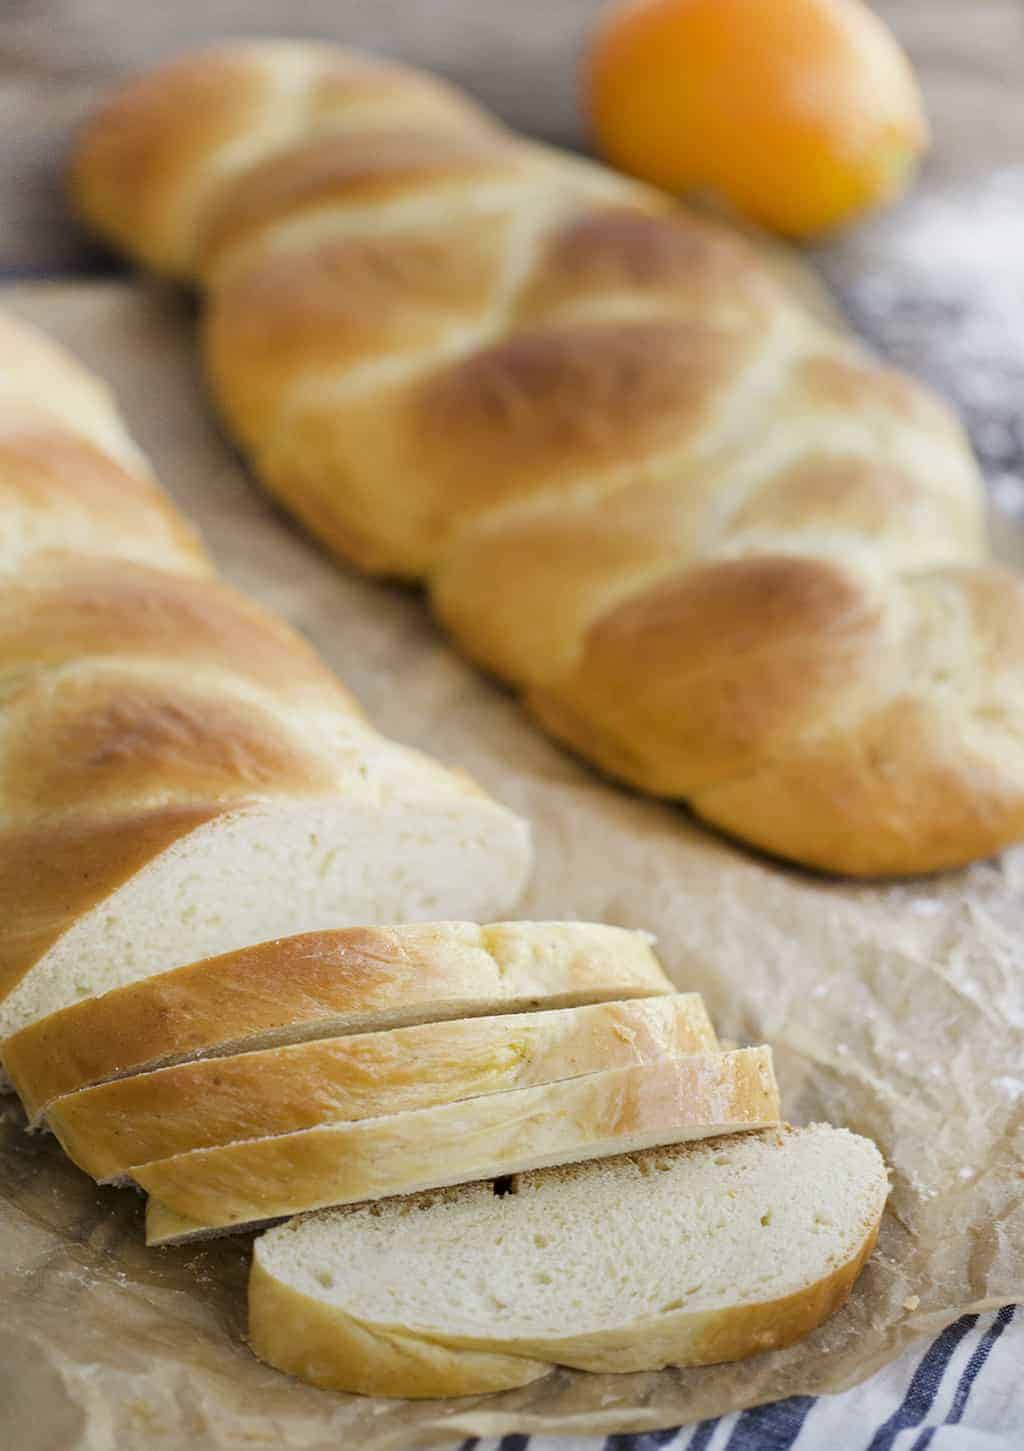 A photo of sliced Tsoureki Greek Braided Bread.